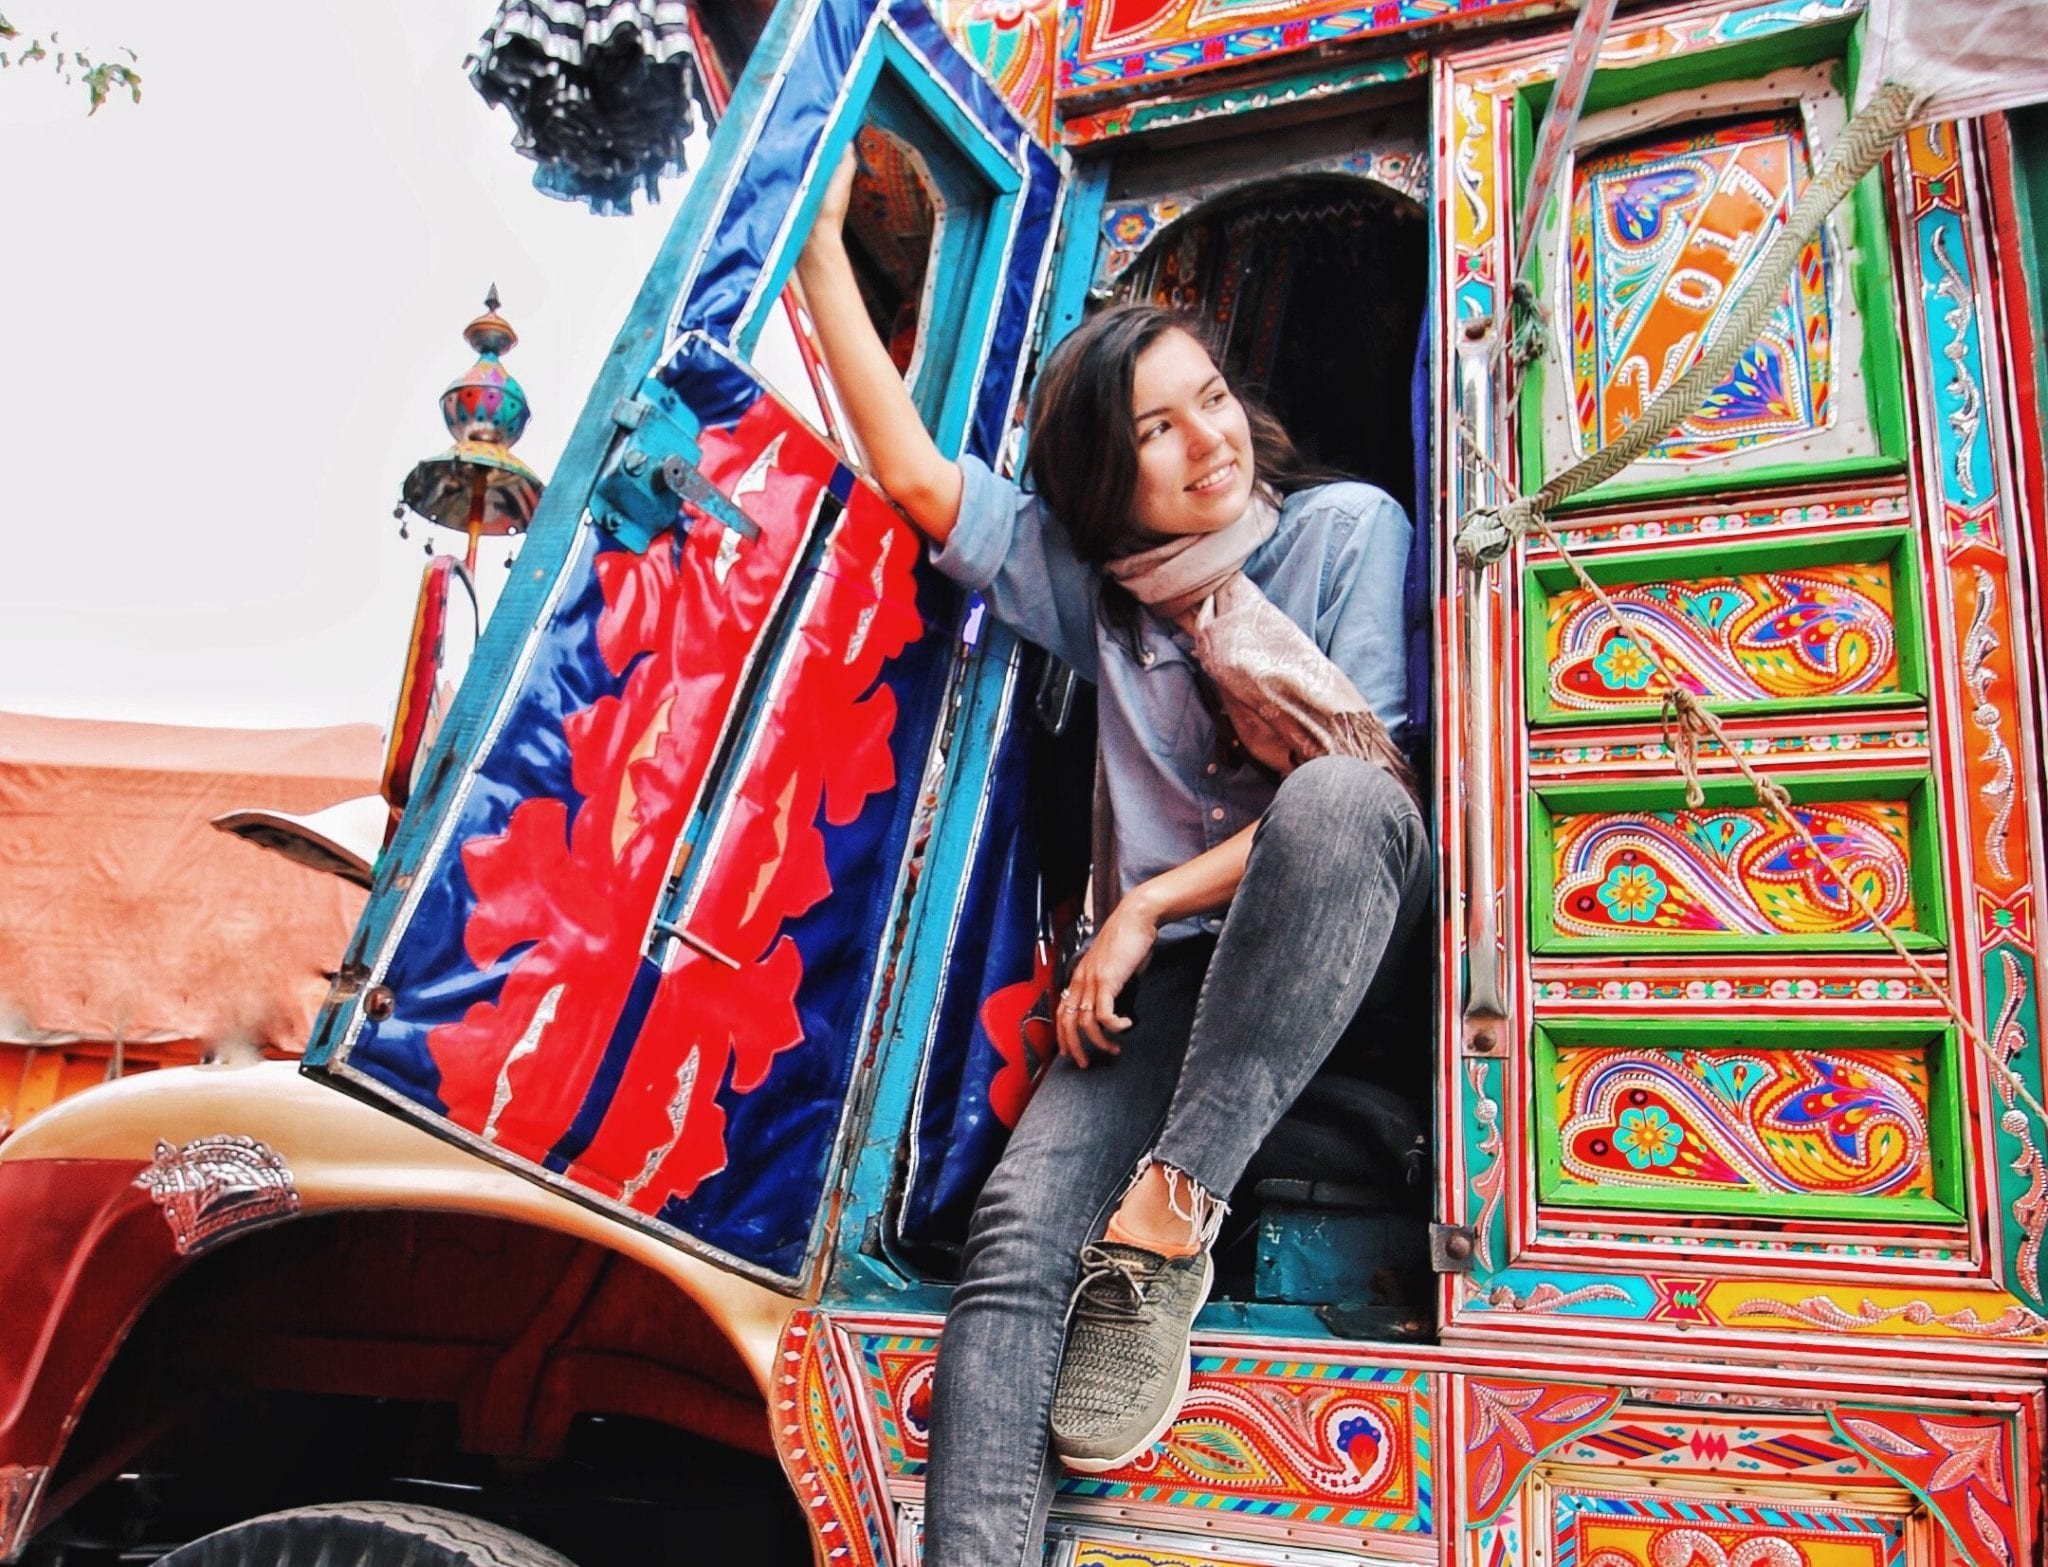 Meet Eva Zu Beck, the Polish Travel Vlogger Promoting Tourism to Pakistan